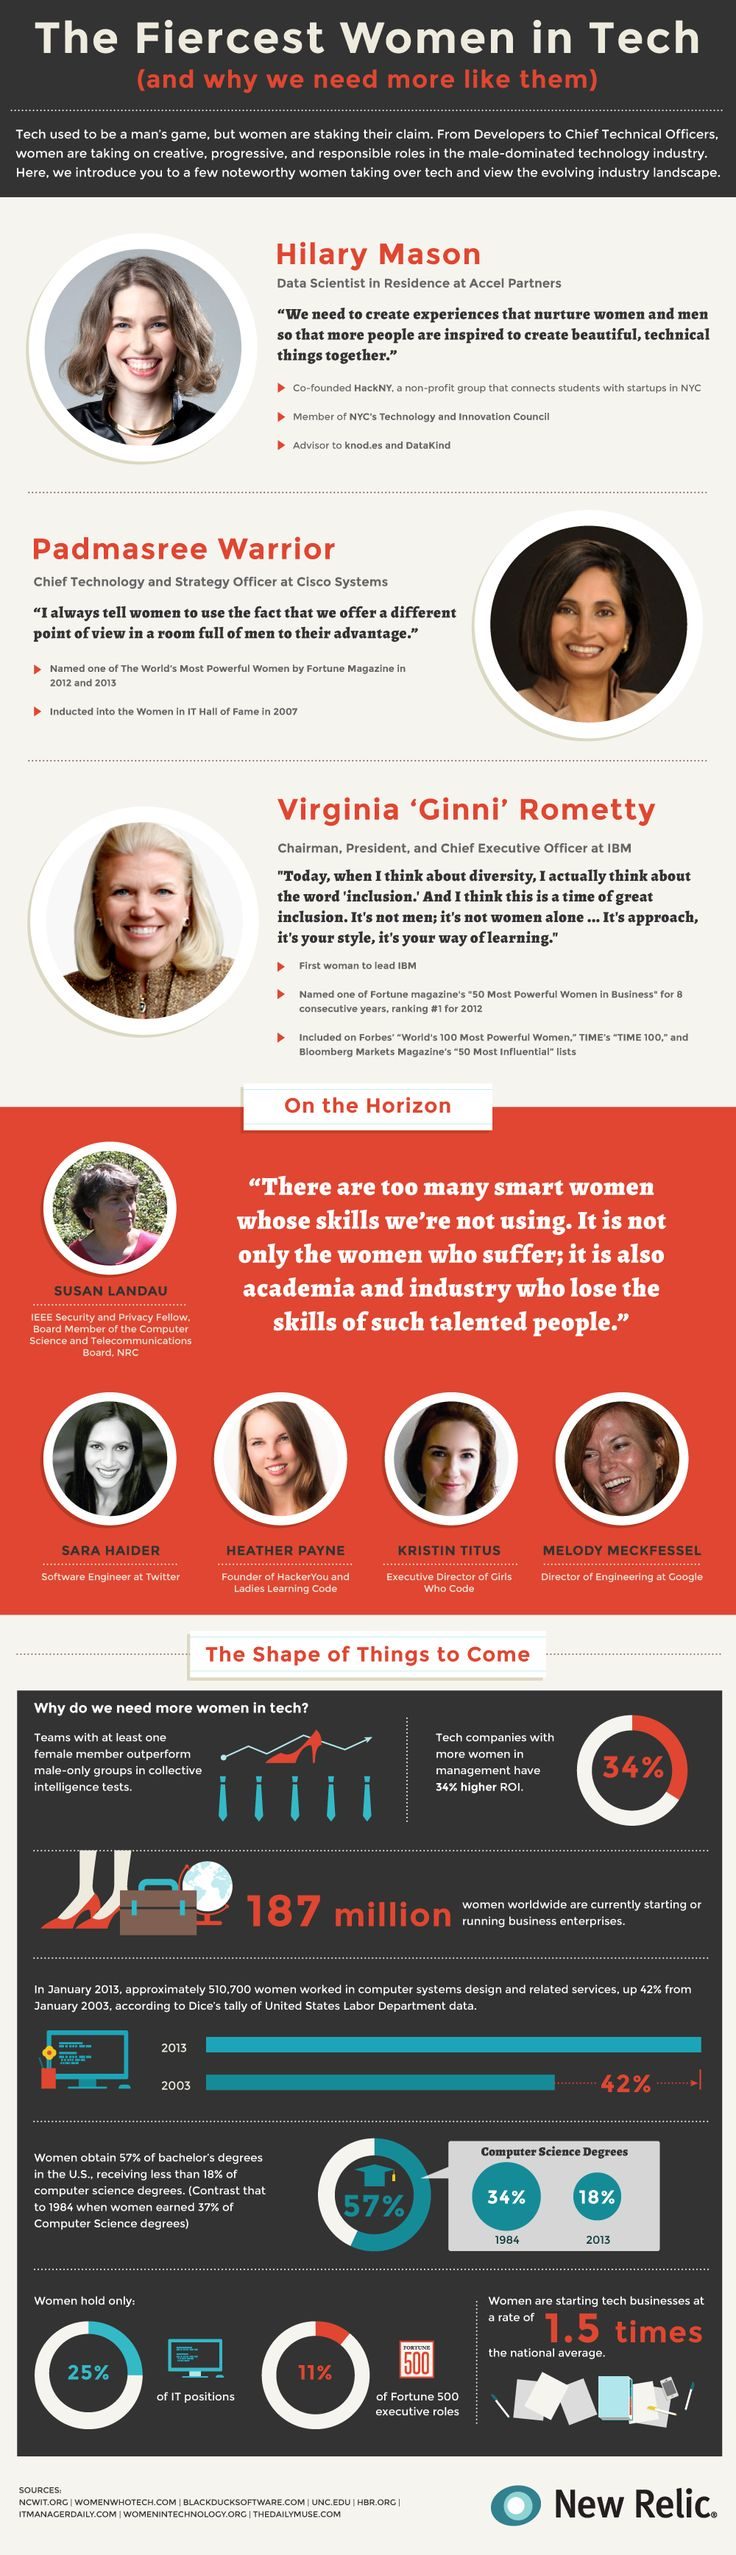 Infographic: The Fiercest Women in Tech (and Why We Need More Like Them) http://blog.newrelic.com/2013/08/19/infographic-the-fiercest-women-in-tech-and-why-we-need-more-like-them/?utm_source=TWIT_medium=social_media_content=womenintech_campaign=promotedtweet=SM-TWIT-generic-en-100-womenintech-august